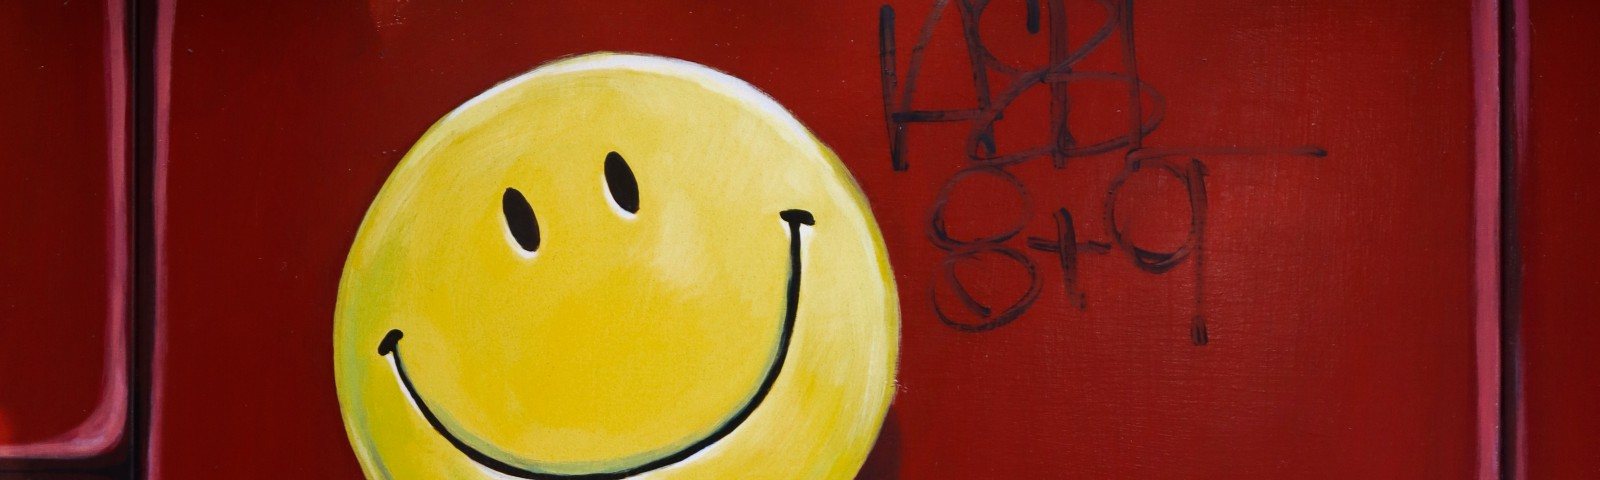 smile faces on wall